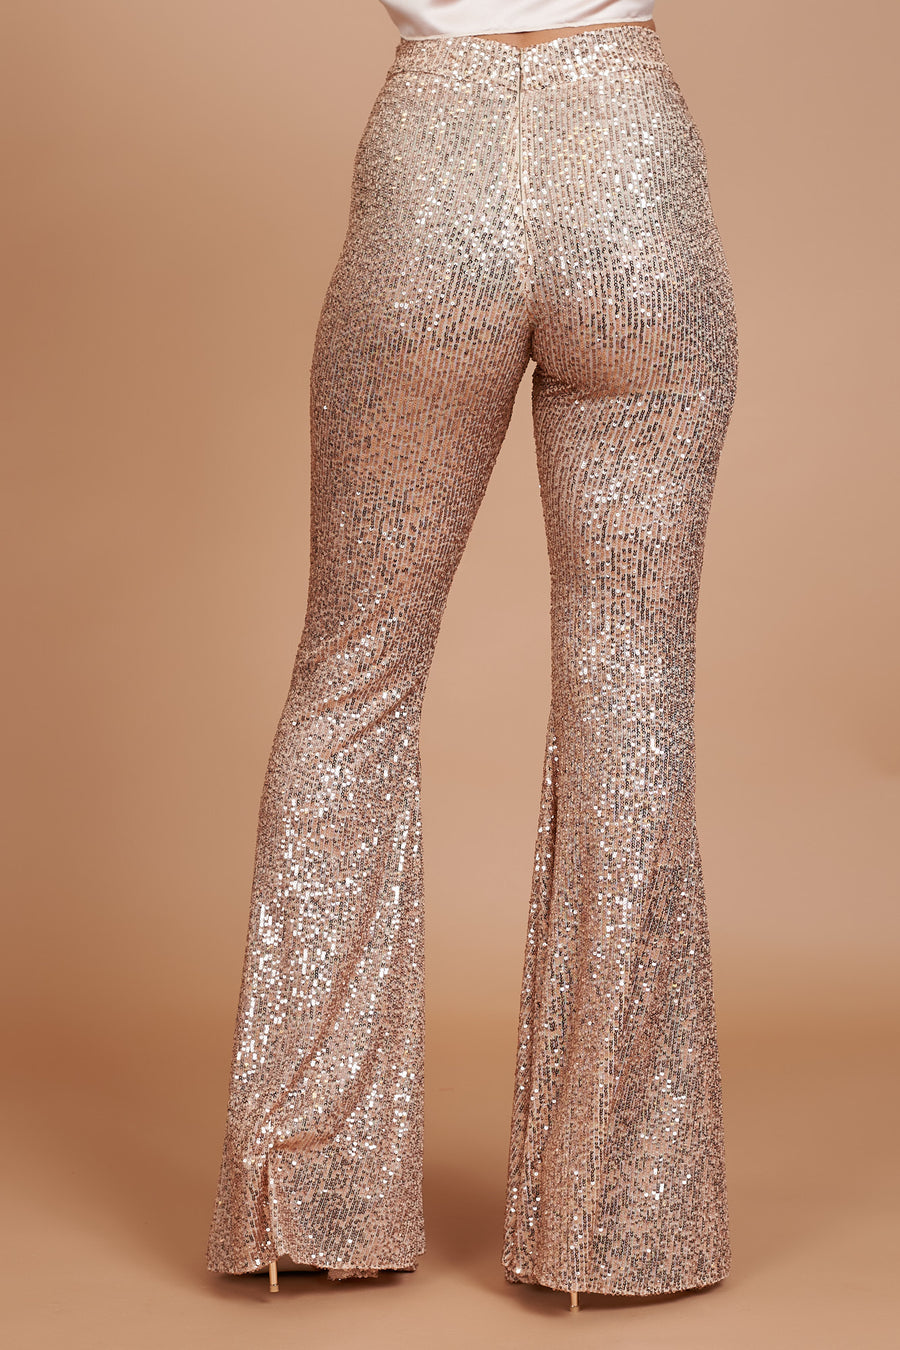 Rose Gold Stretch Flares